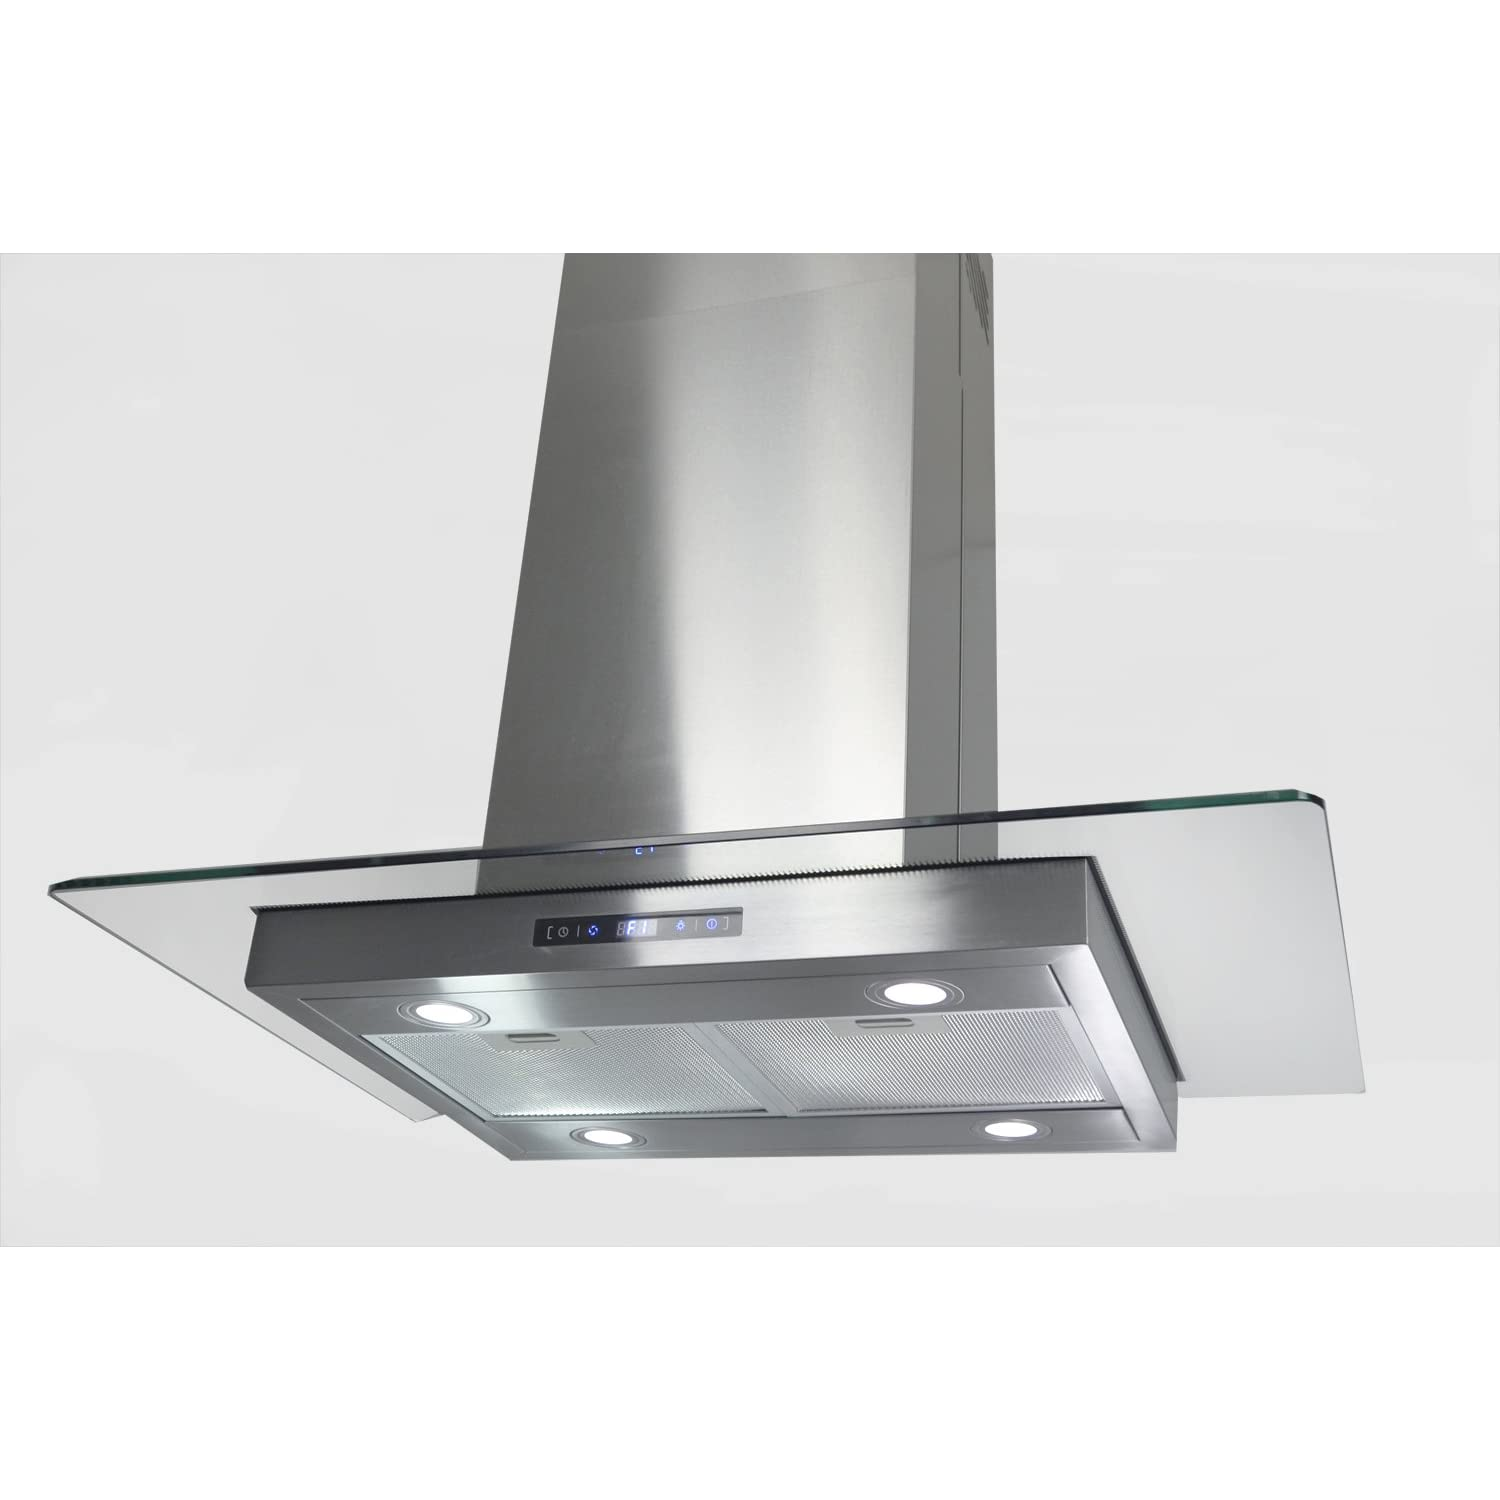 "Golden Vantage 36"" Island Mount Stainless Steel Range Hood Stove Vent KDCI-36CF at Sears.com"